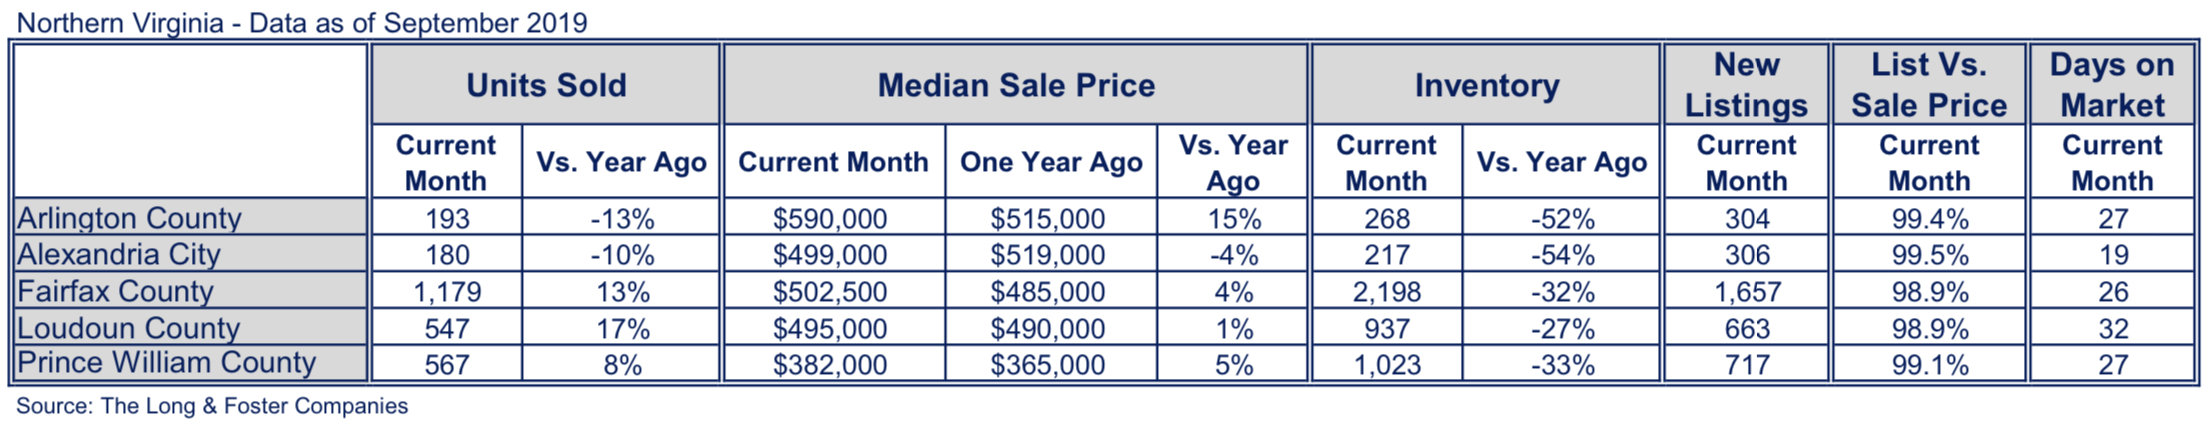 Northern Virginia Market Minute Chart September 2019